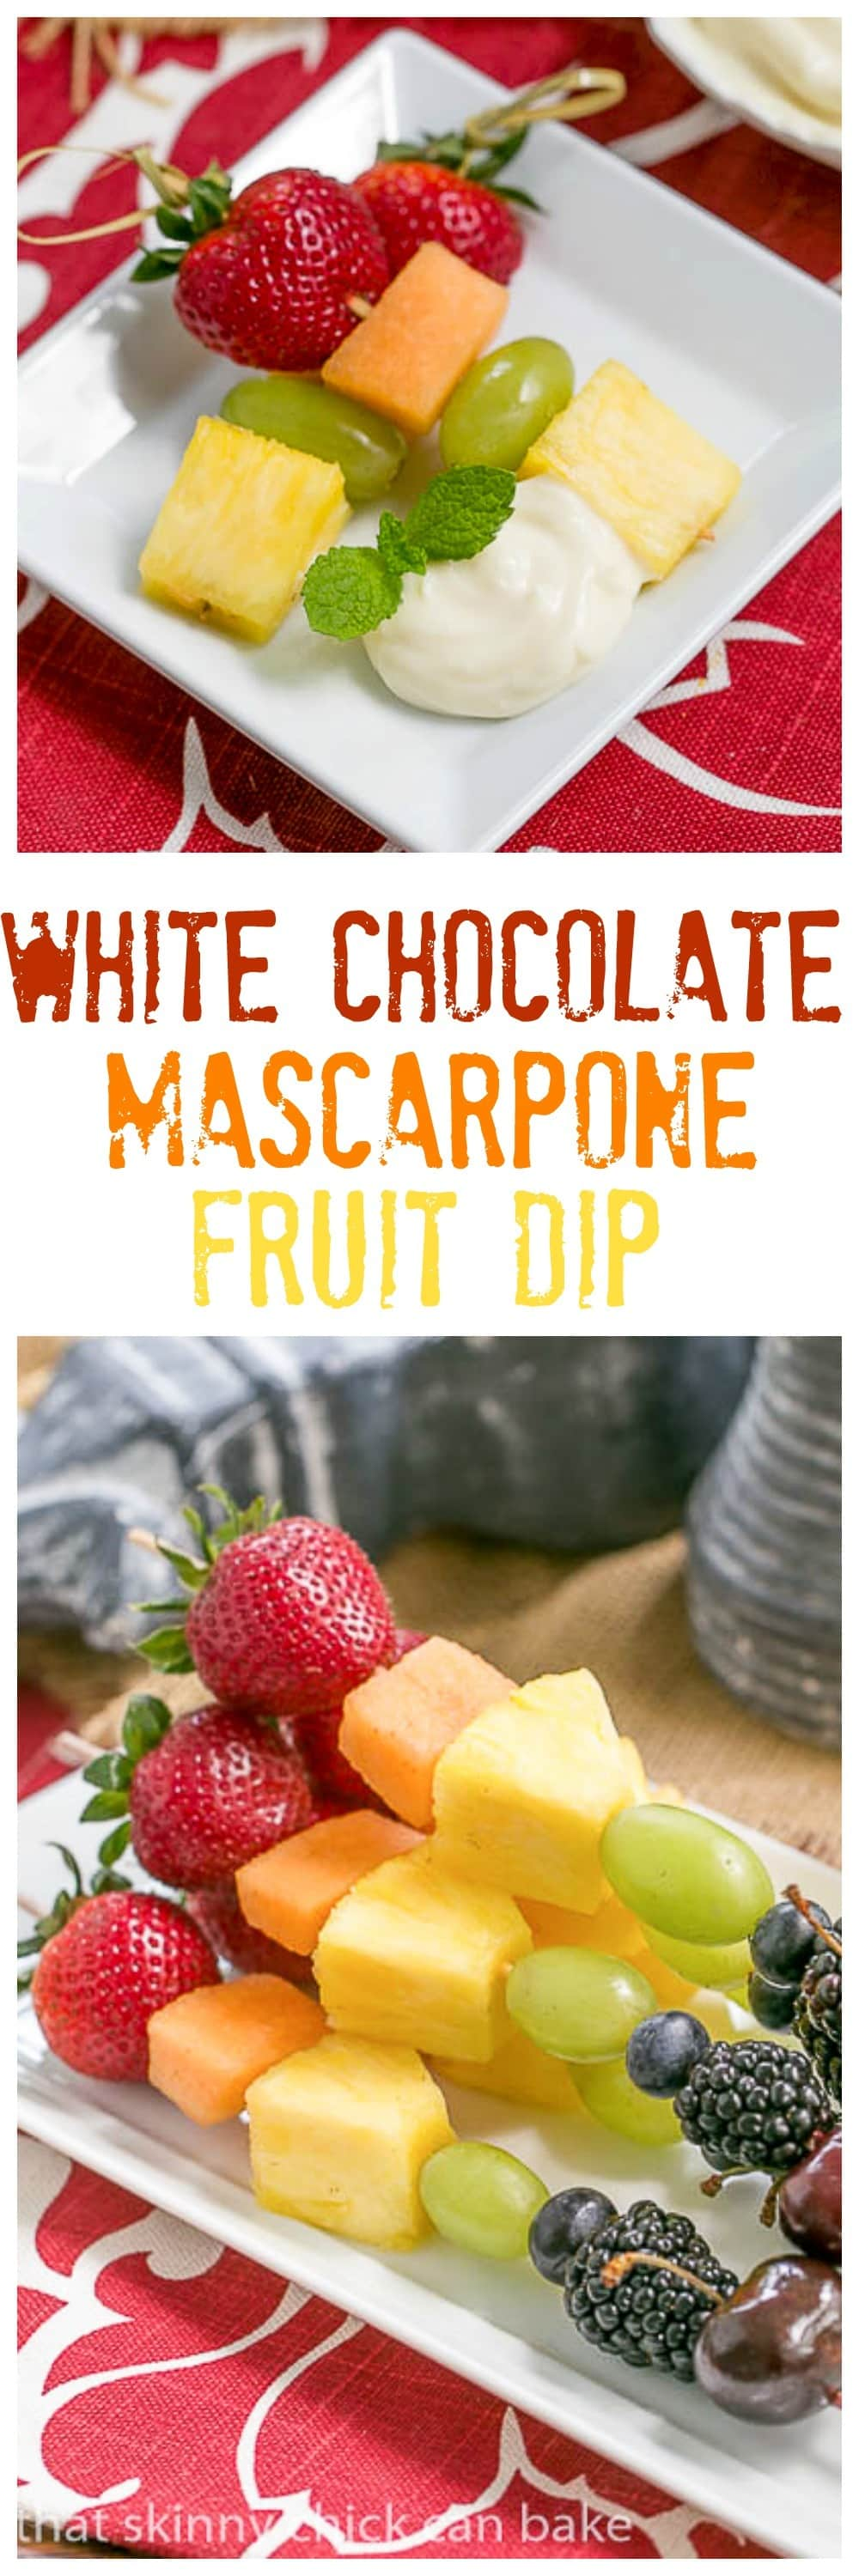 Fruit Kebabs With White Chocolate Mascarpone Dip Dip Recipe